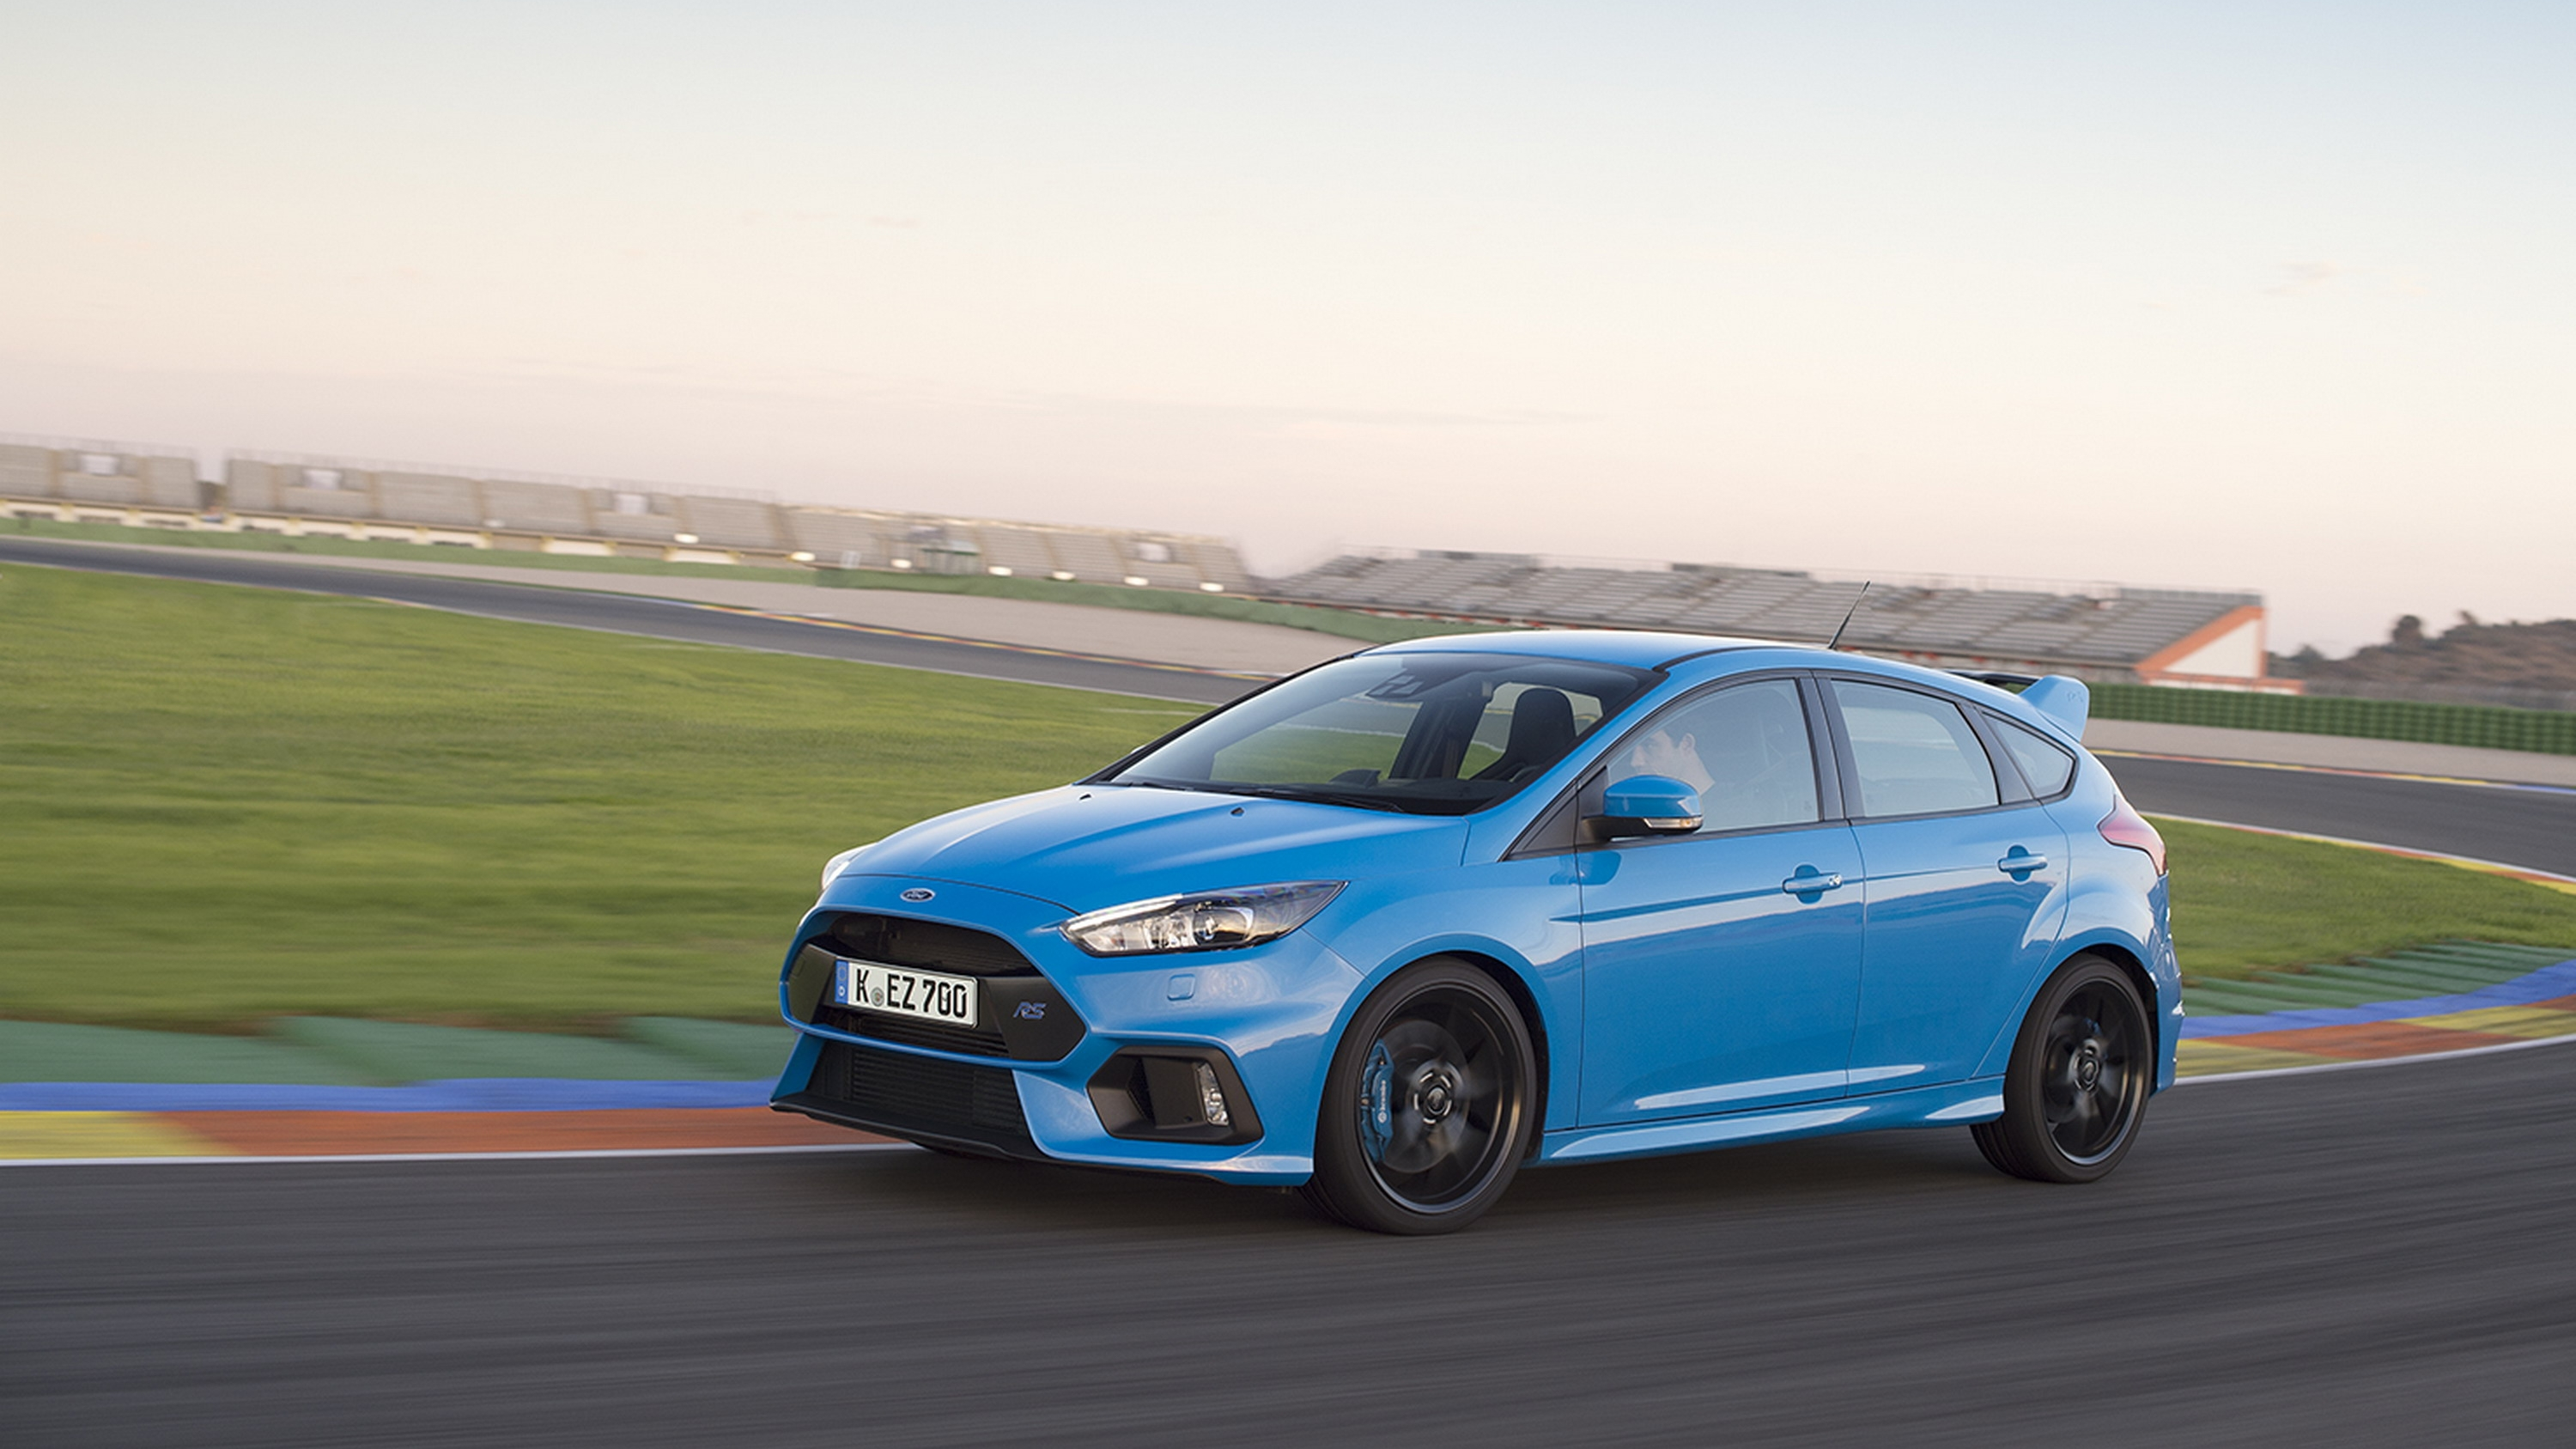 Focus Rs Coolant Problem Finally Solved Ford Used The Wrong Head Engine Burn Gasket Top Speed